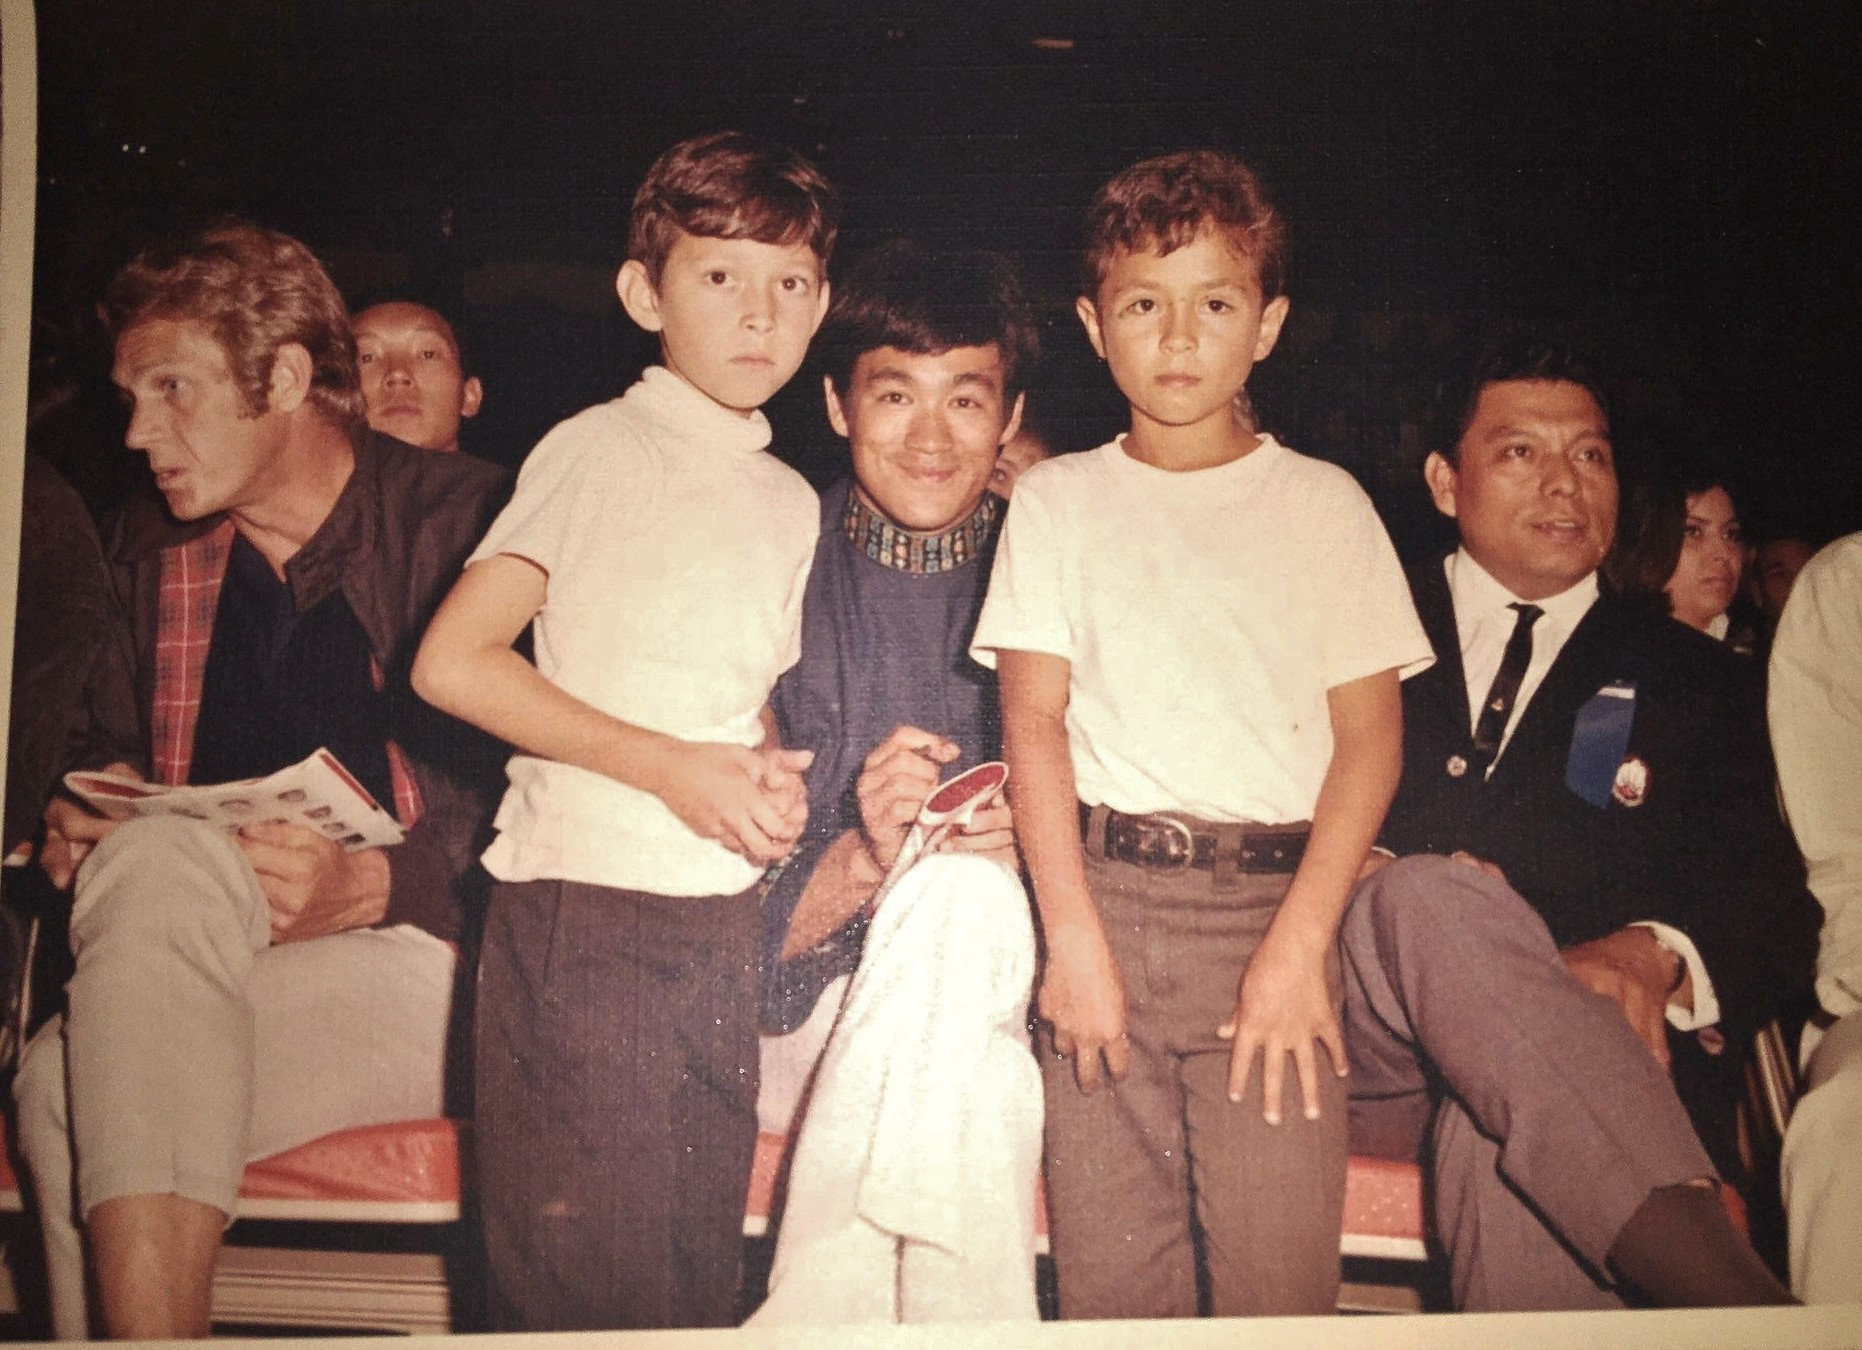 Steve McQueen attentively listens to a seated companion while Bruce Lee happily signs autographs for two middle school boys